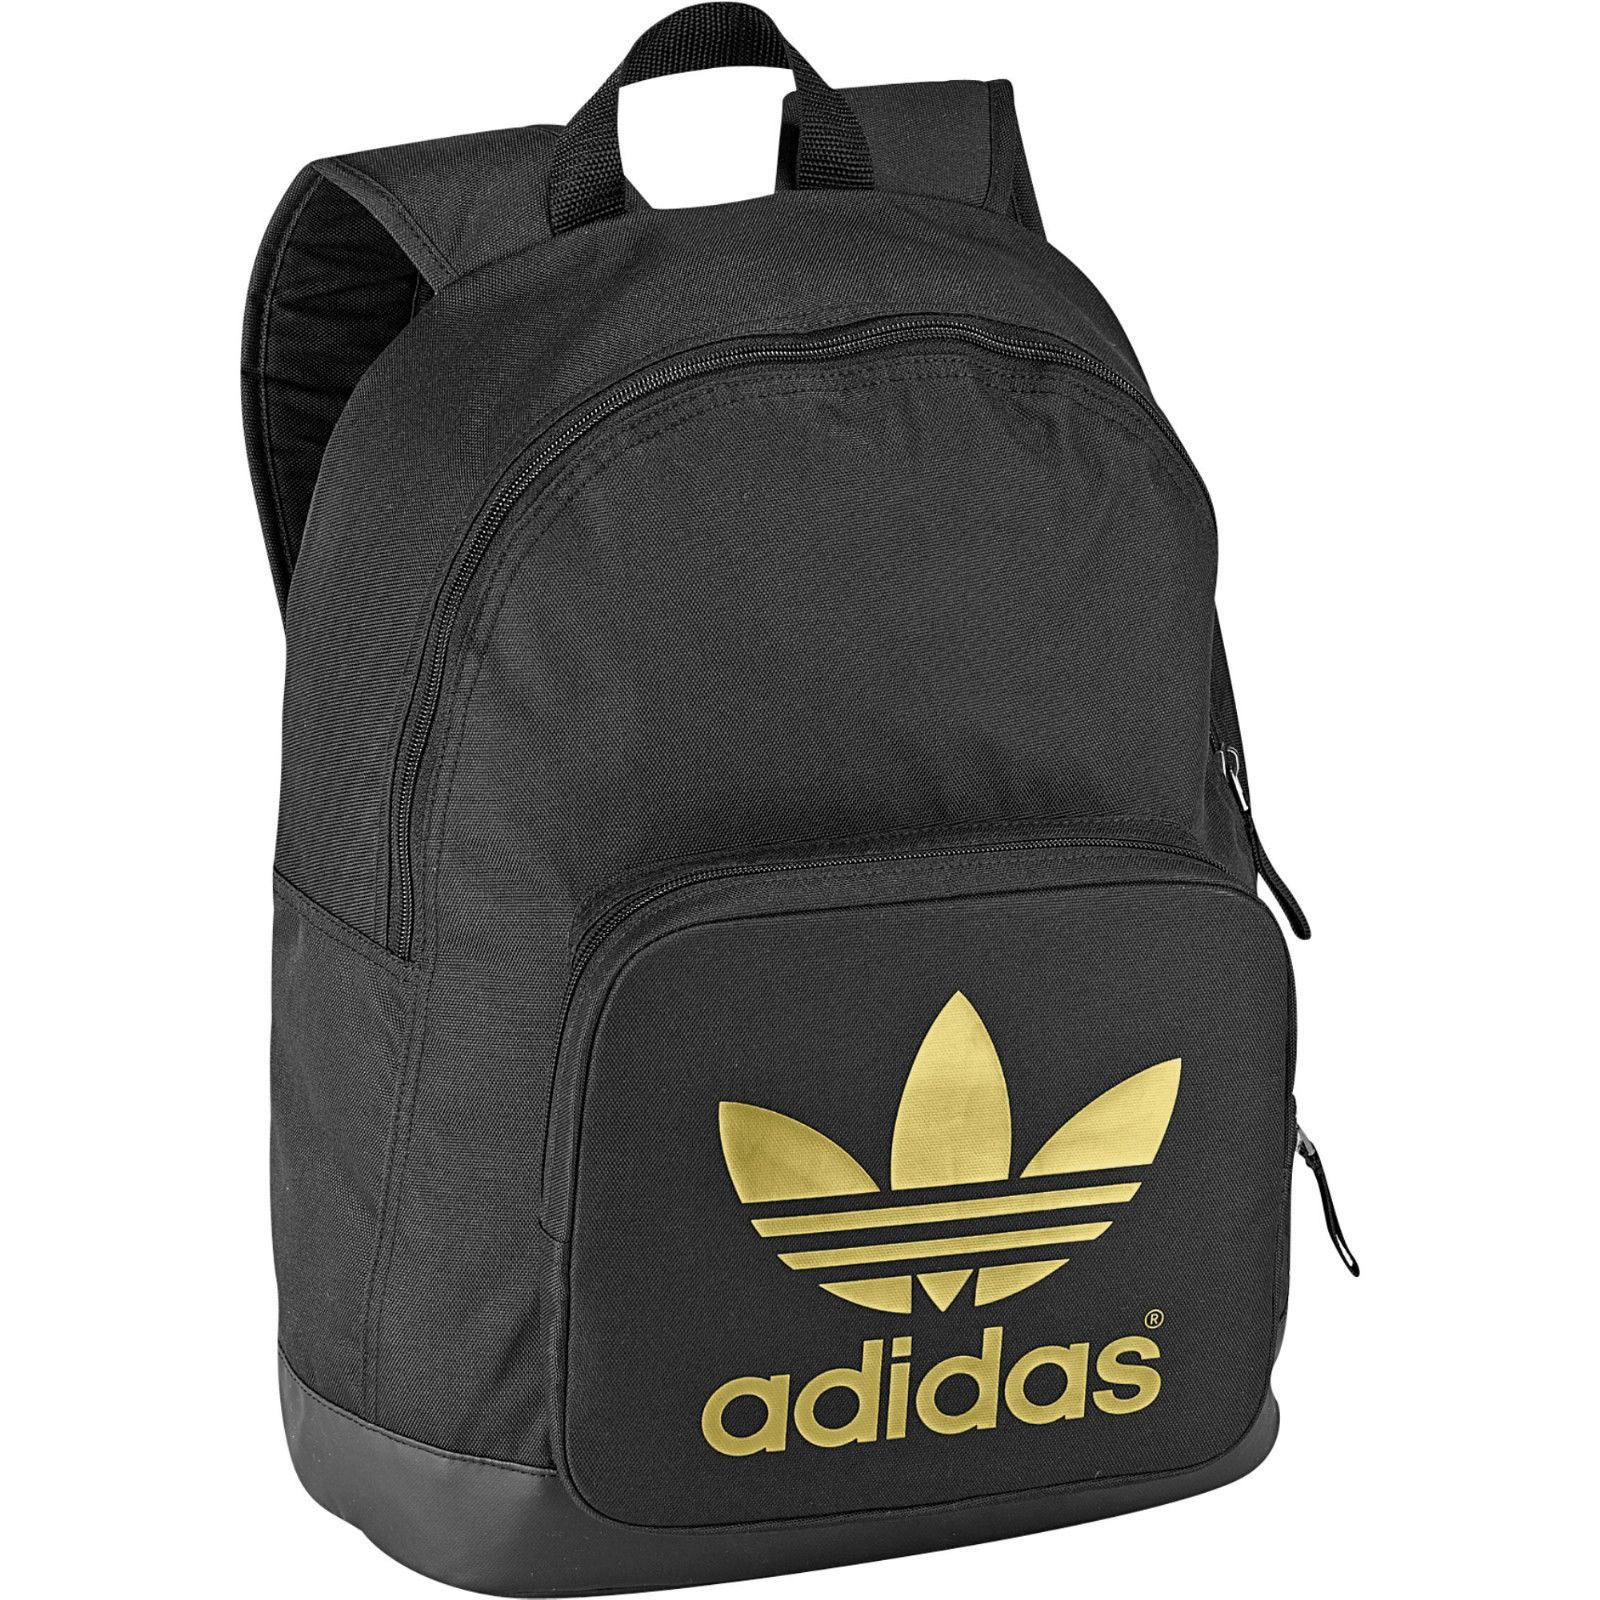 ee5309a0042c Adidas Originals Backpacks Mens Boys Girls Adidas School Backbags Rucksacks